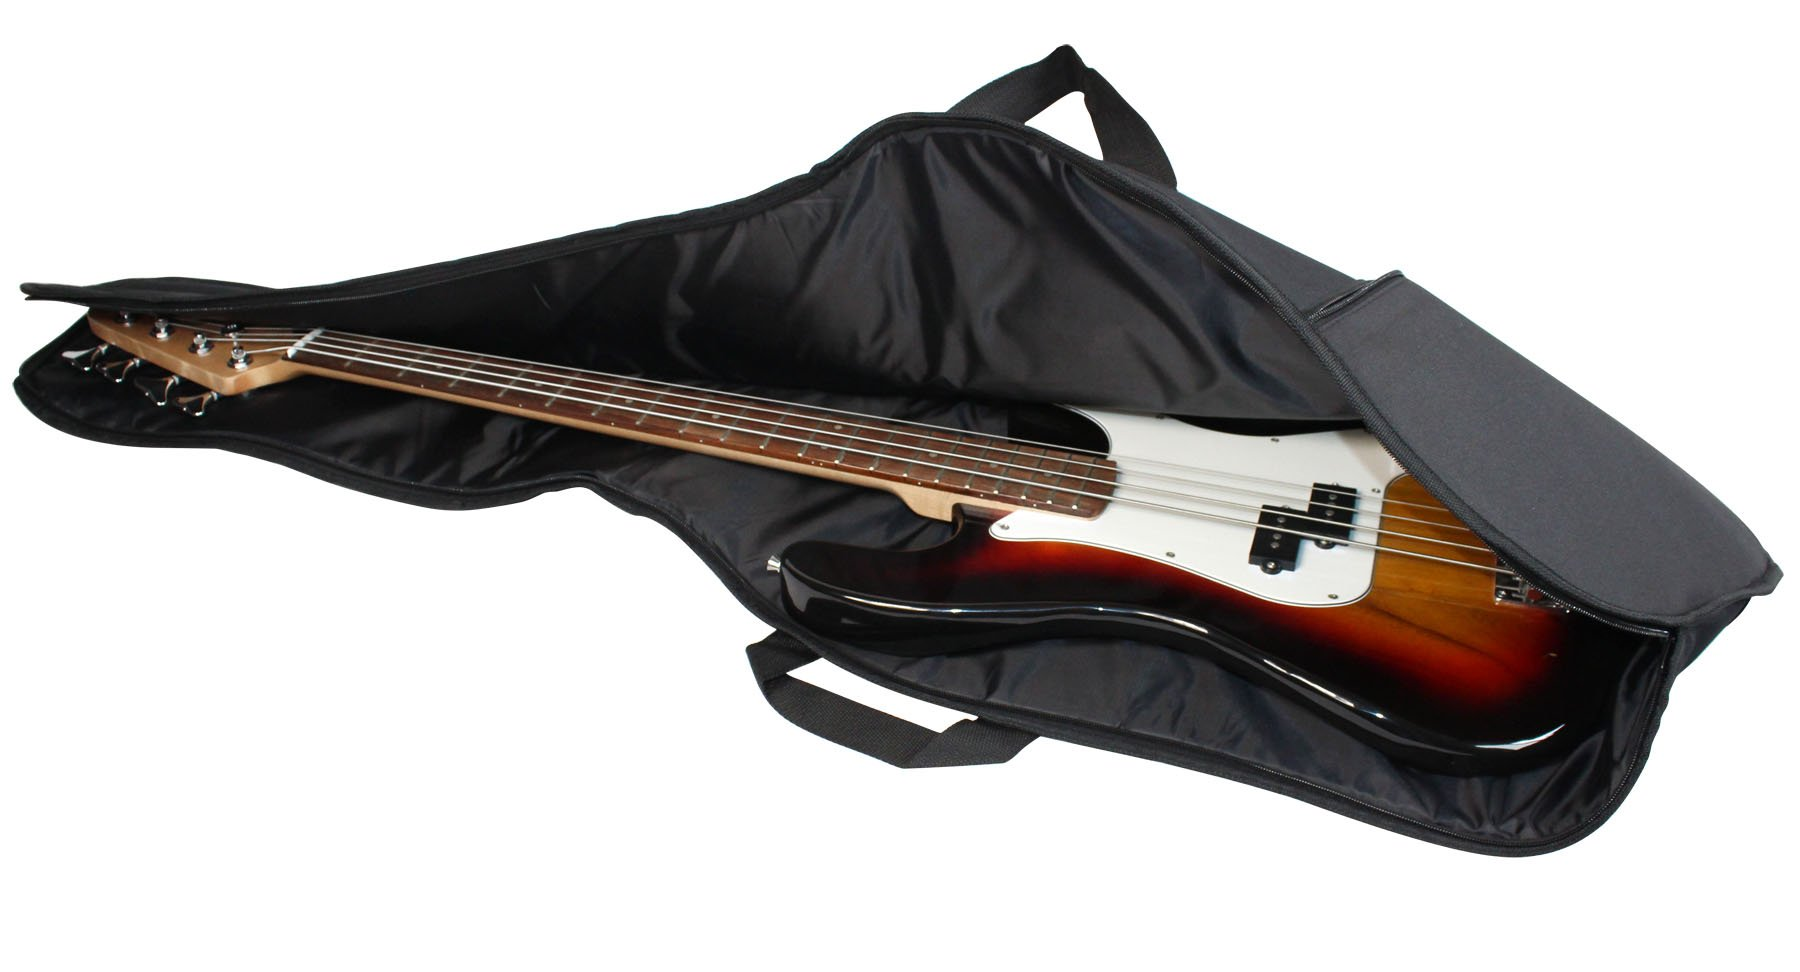 YMC 46-Inch Waterproof Dual Adjustable Shoulder Strap Electric Bass Guitar Gig Bag 5mm Padding Backpack with Accessories(Picks, Pick holder, Strap Lock) -For 43'' &46'' Full Size Bass Guitar by YMC (Image #3)